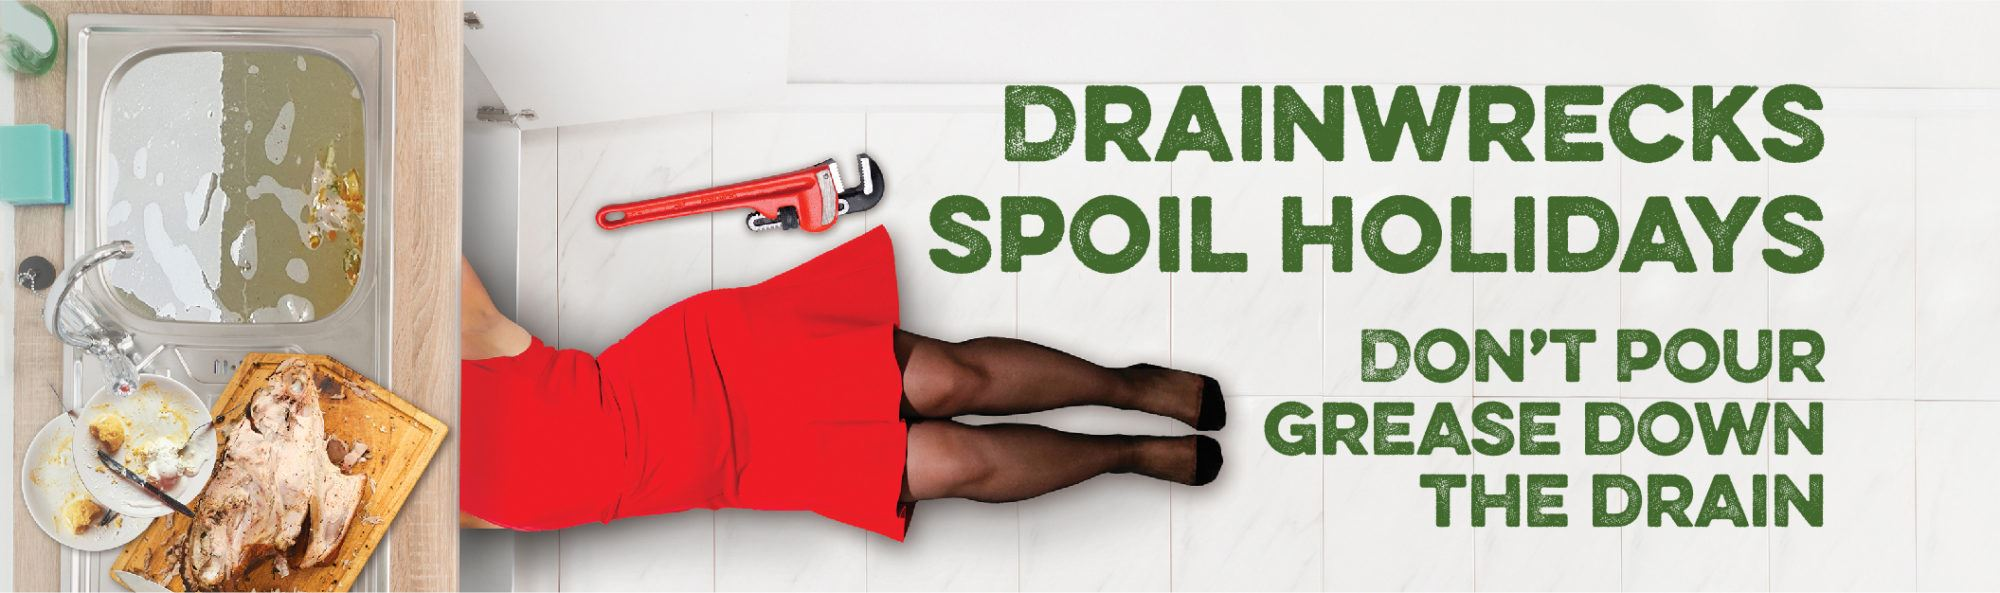 Drainwrecks spoil holidays, do not pour grease down the drain